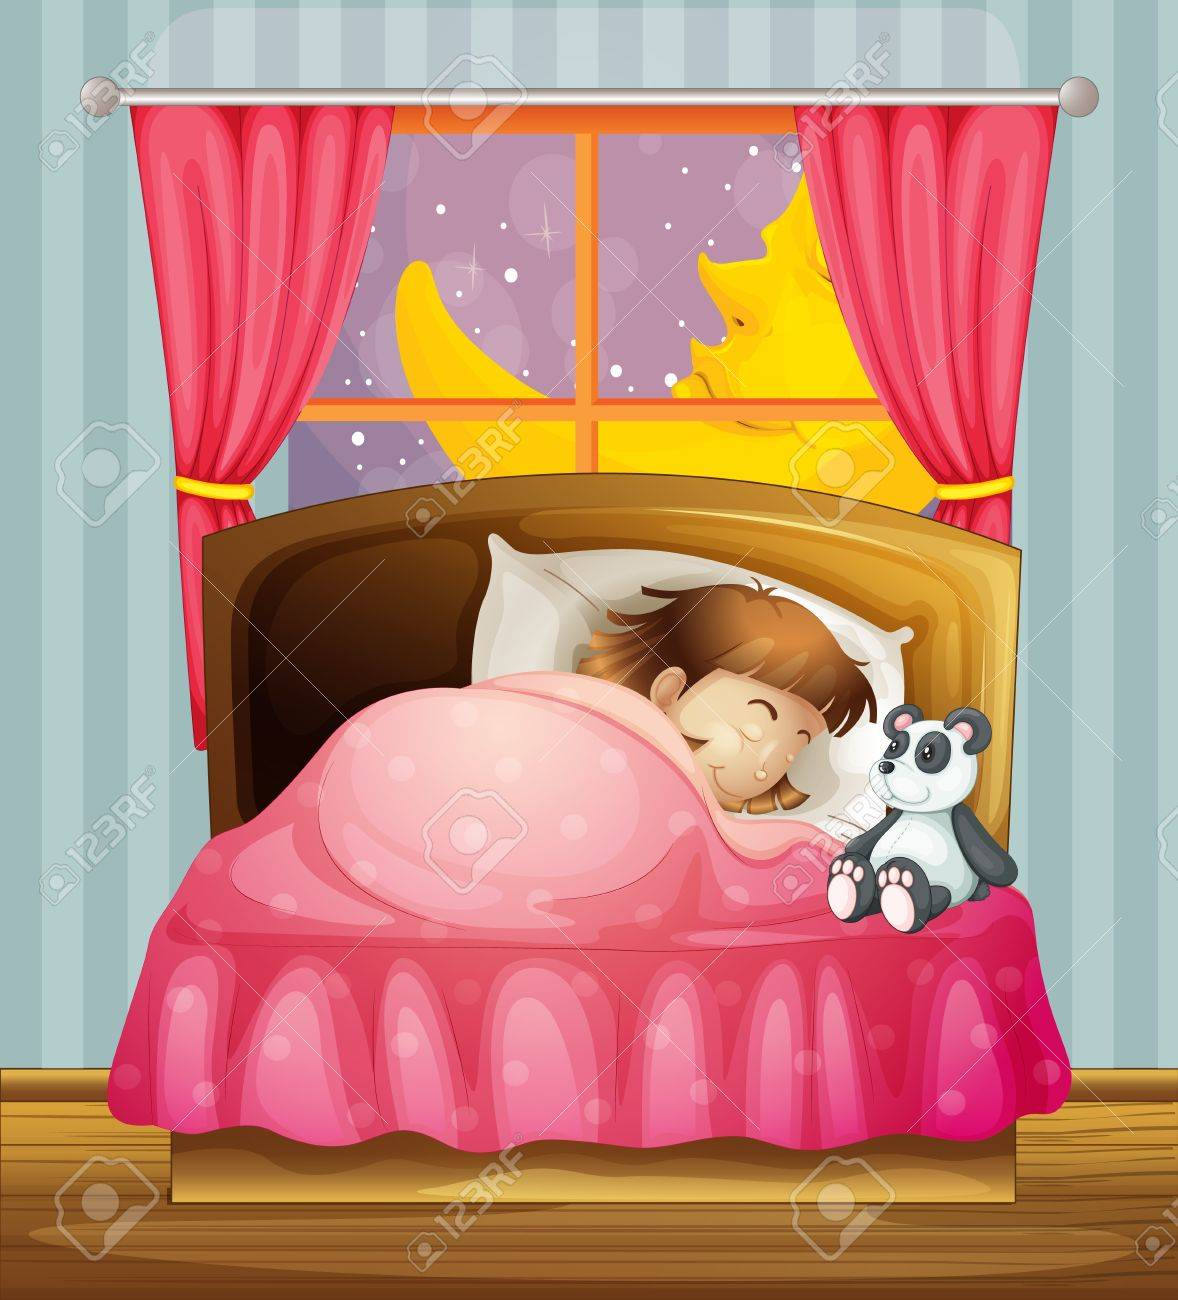 Illustration of a sleeping girl in a room Stock Vector - 17031273